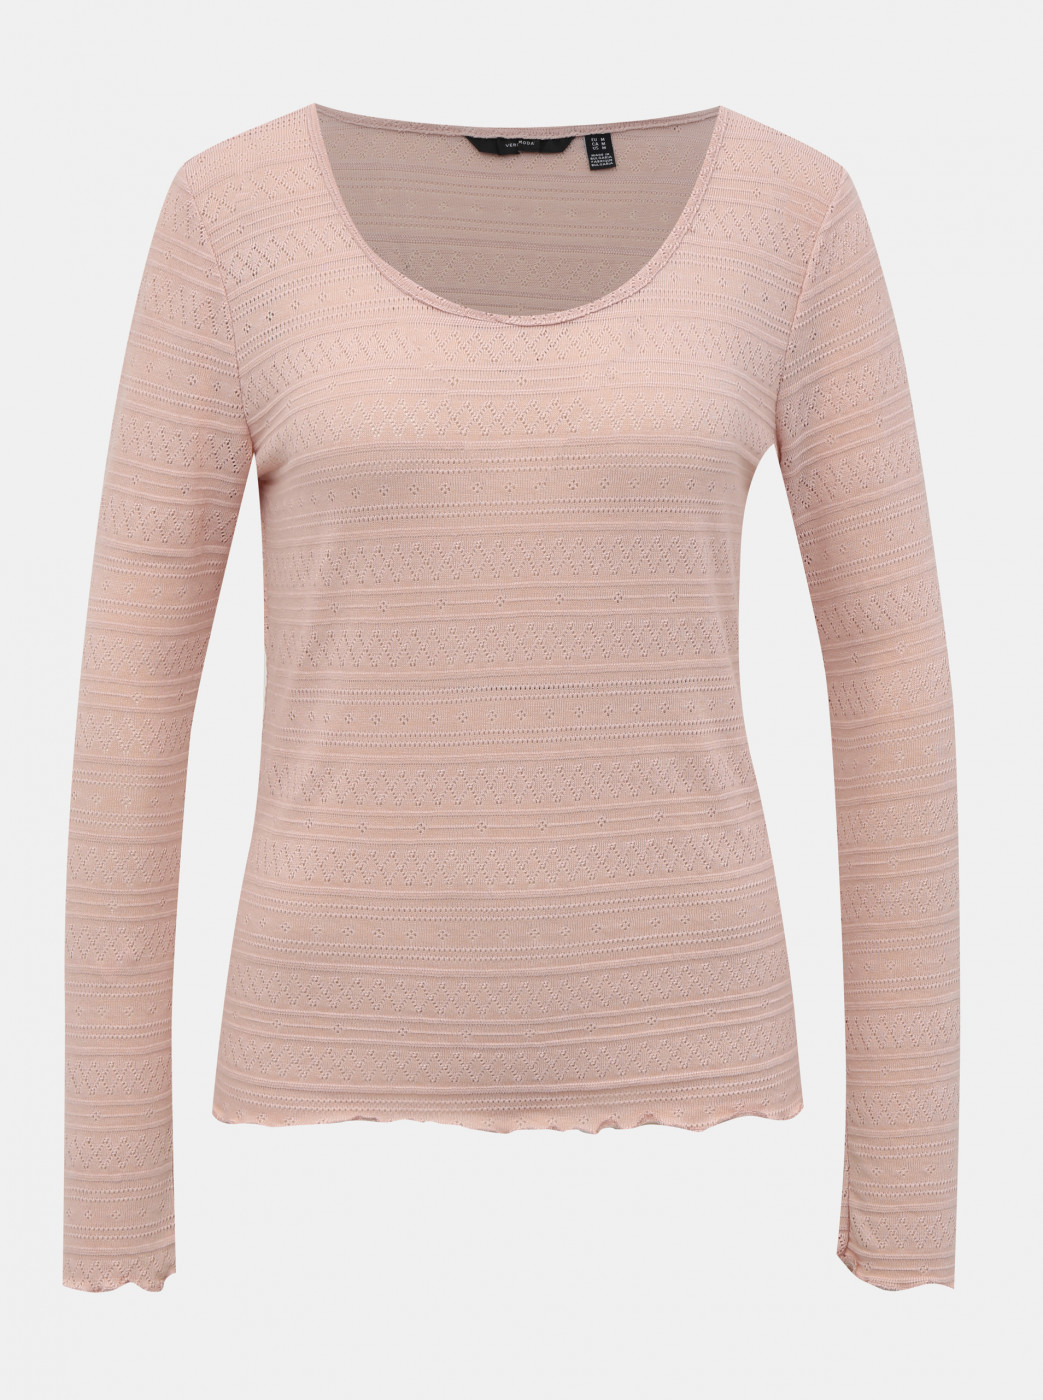 Pink Patterned T-Shirt VERO MODA Hazel